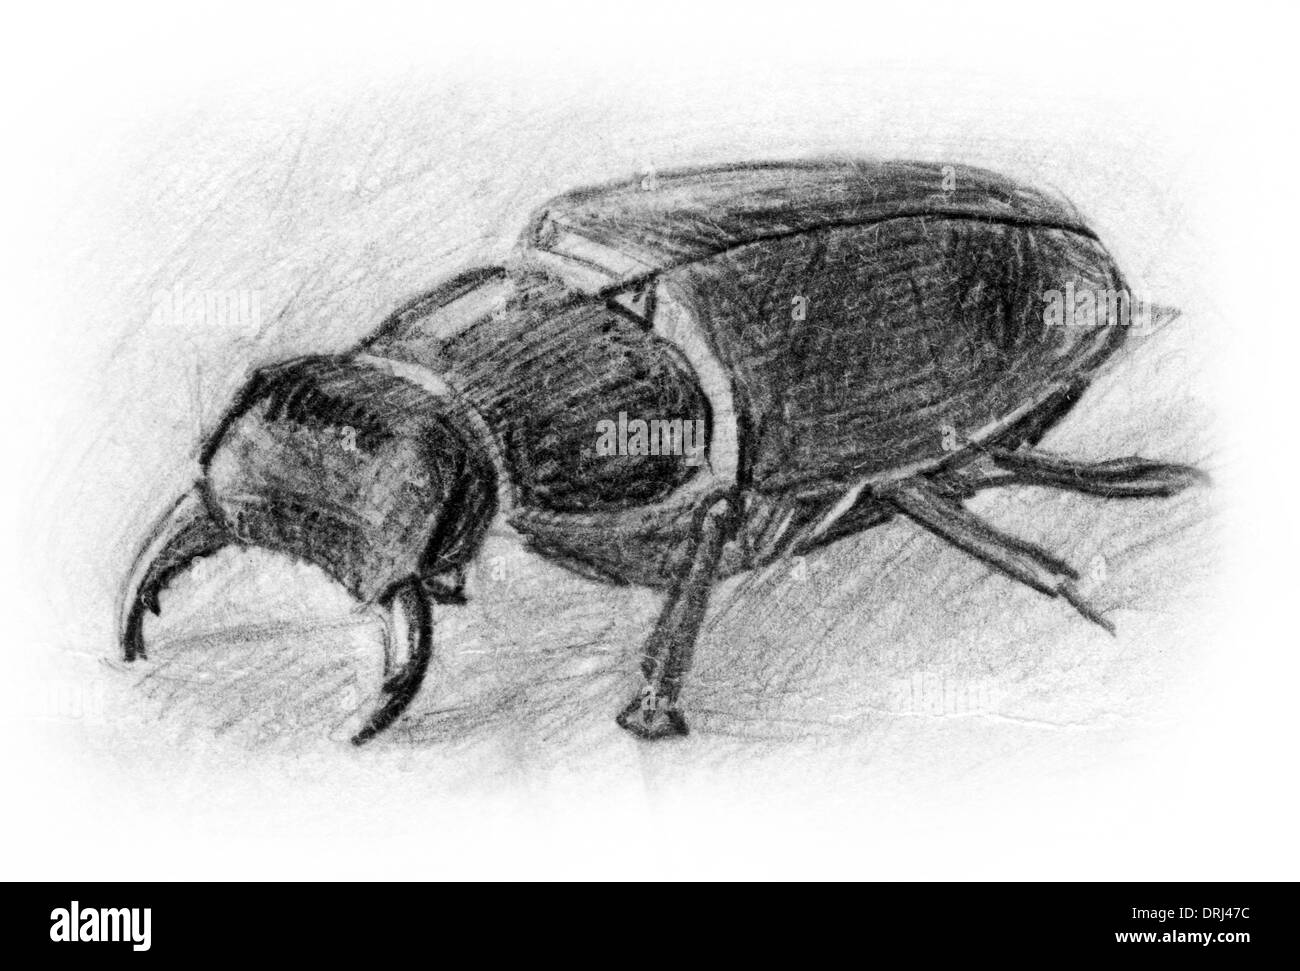 Insects illustrations animals image images beetle beetles